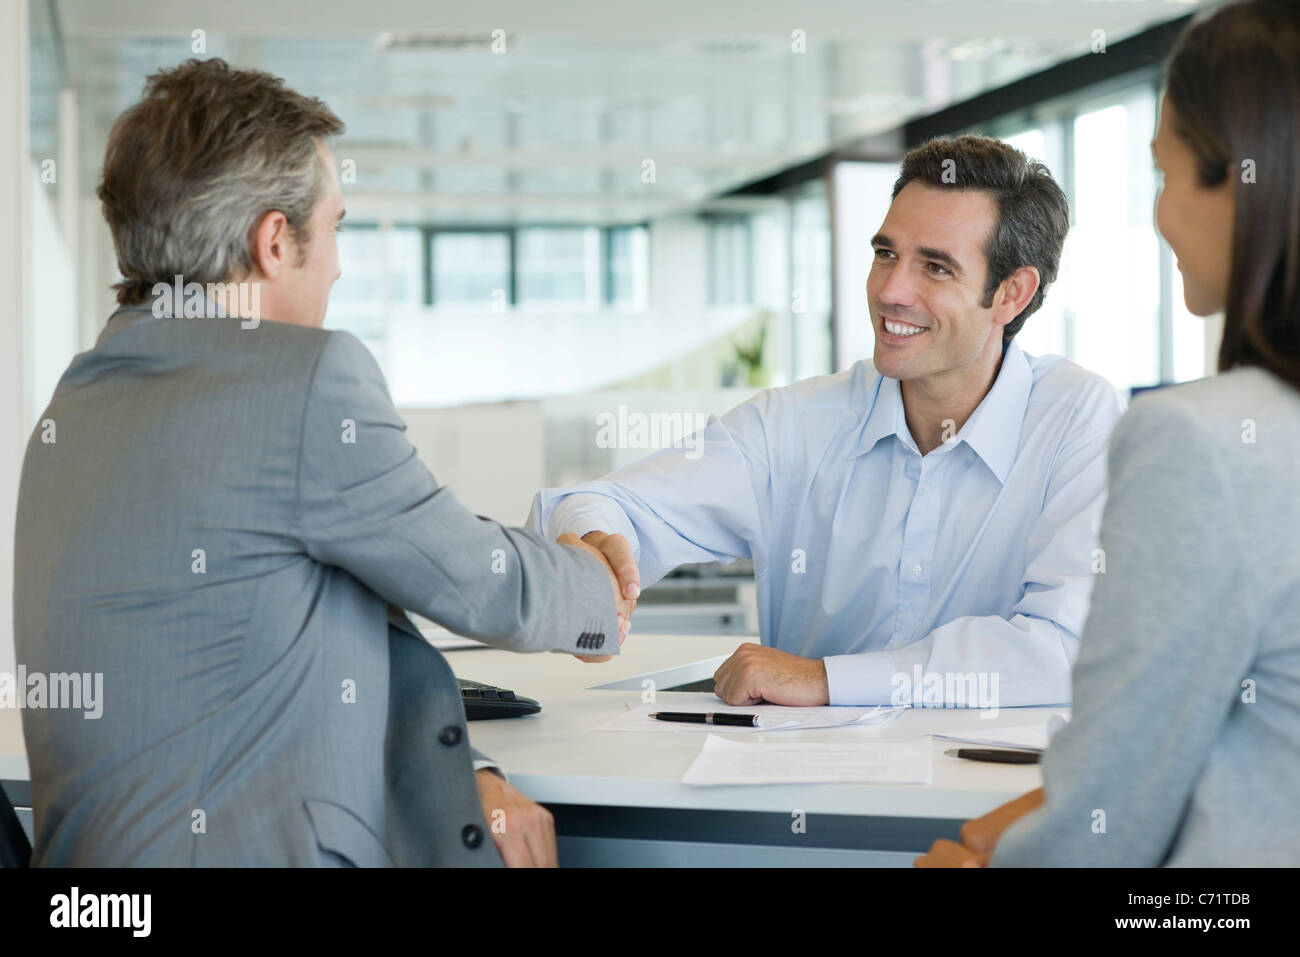 Businessman shaking hands with client - Stock Image